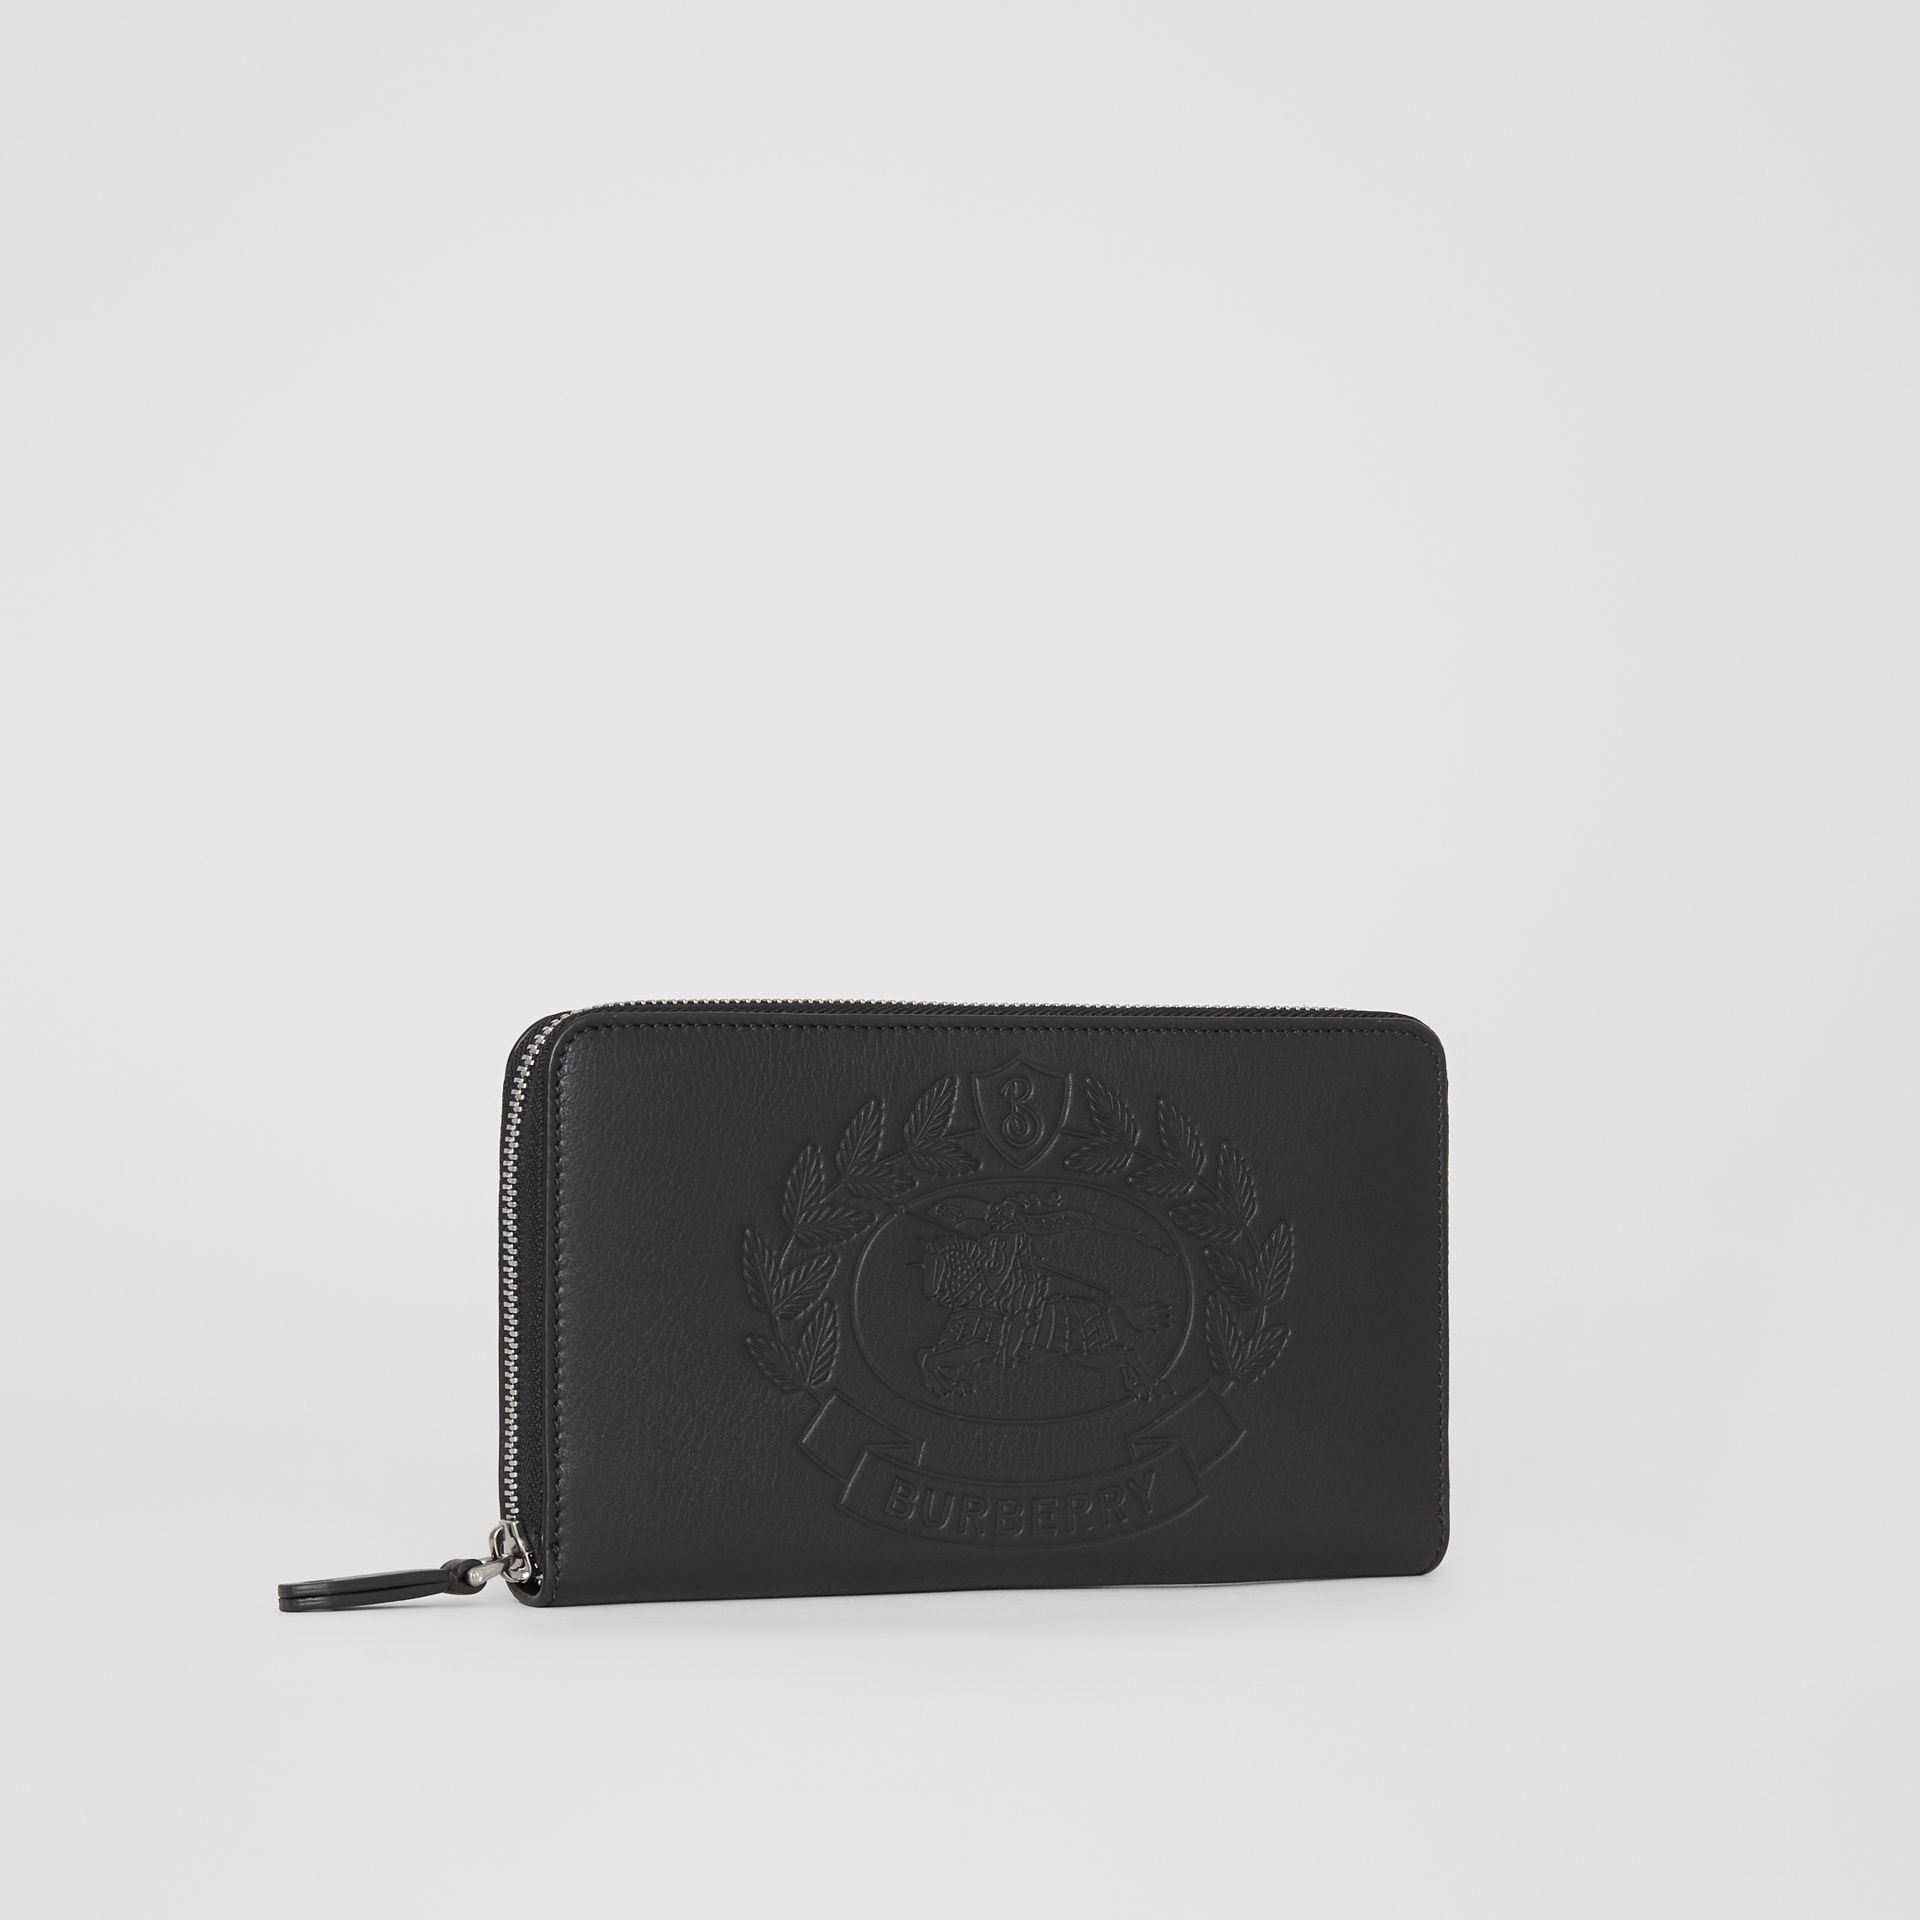 Embossed Crest Leather Ziparound Wallet in Black - Men | Burberry - gallery image 4